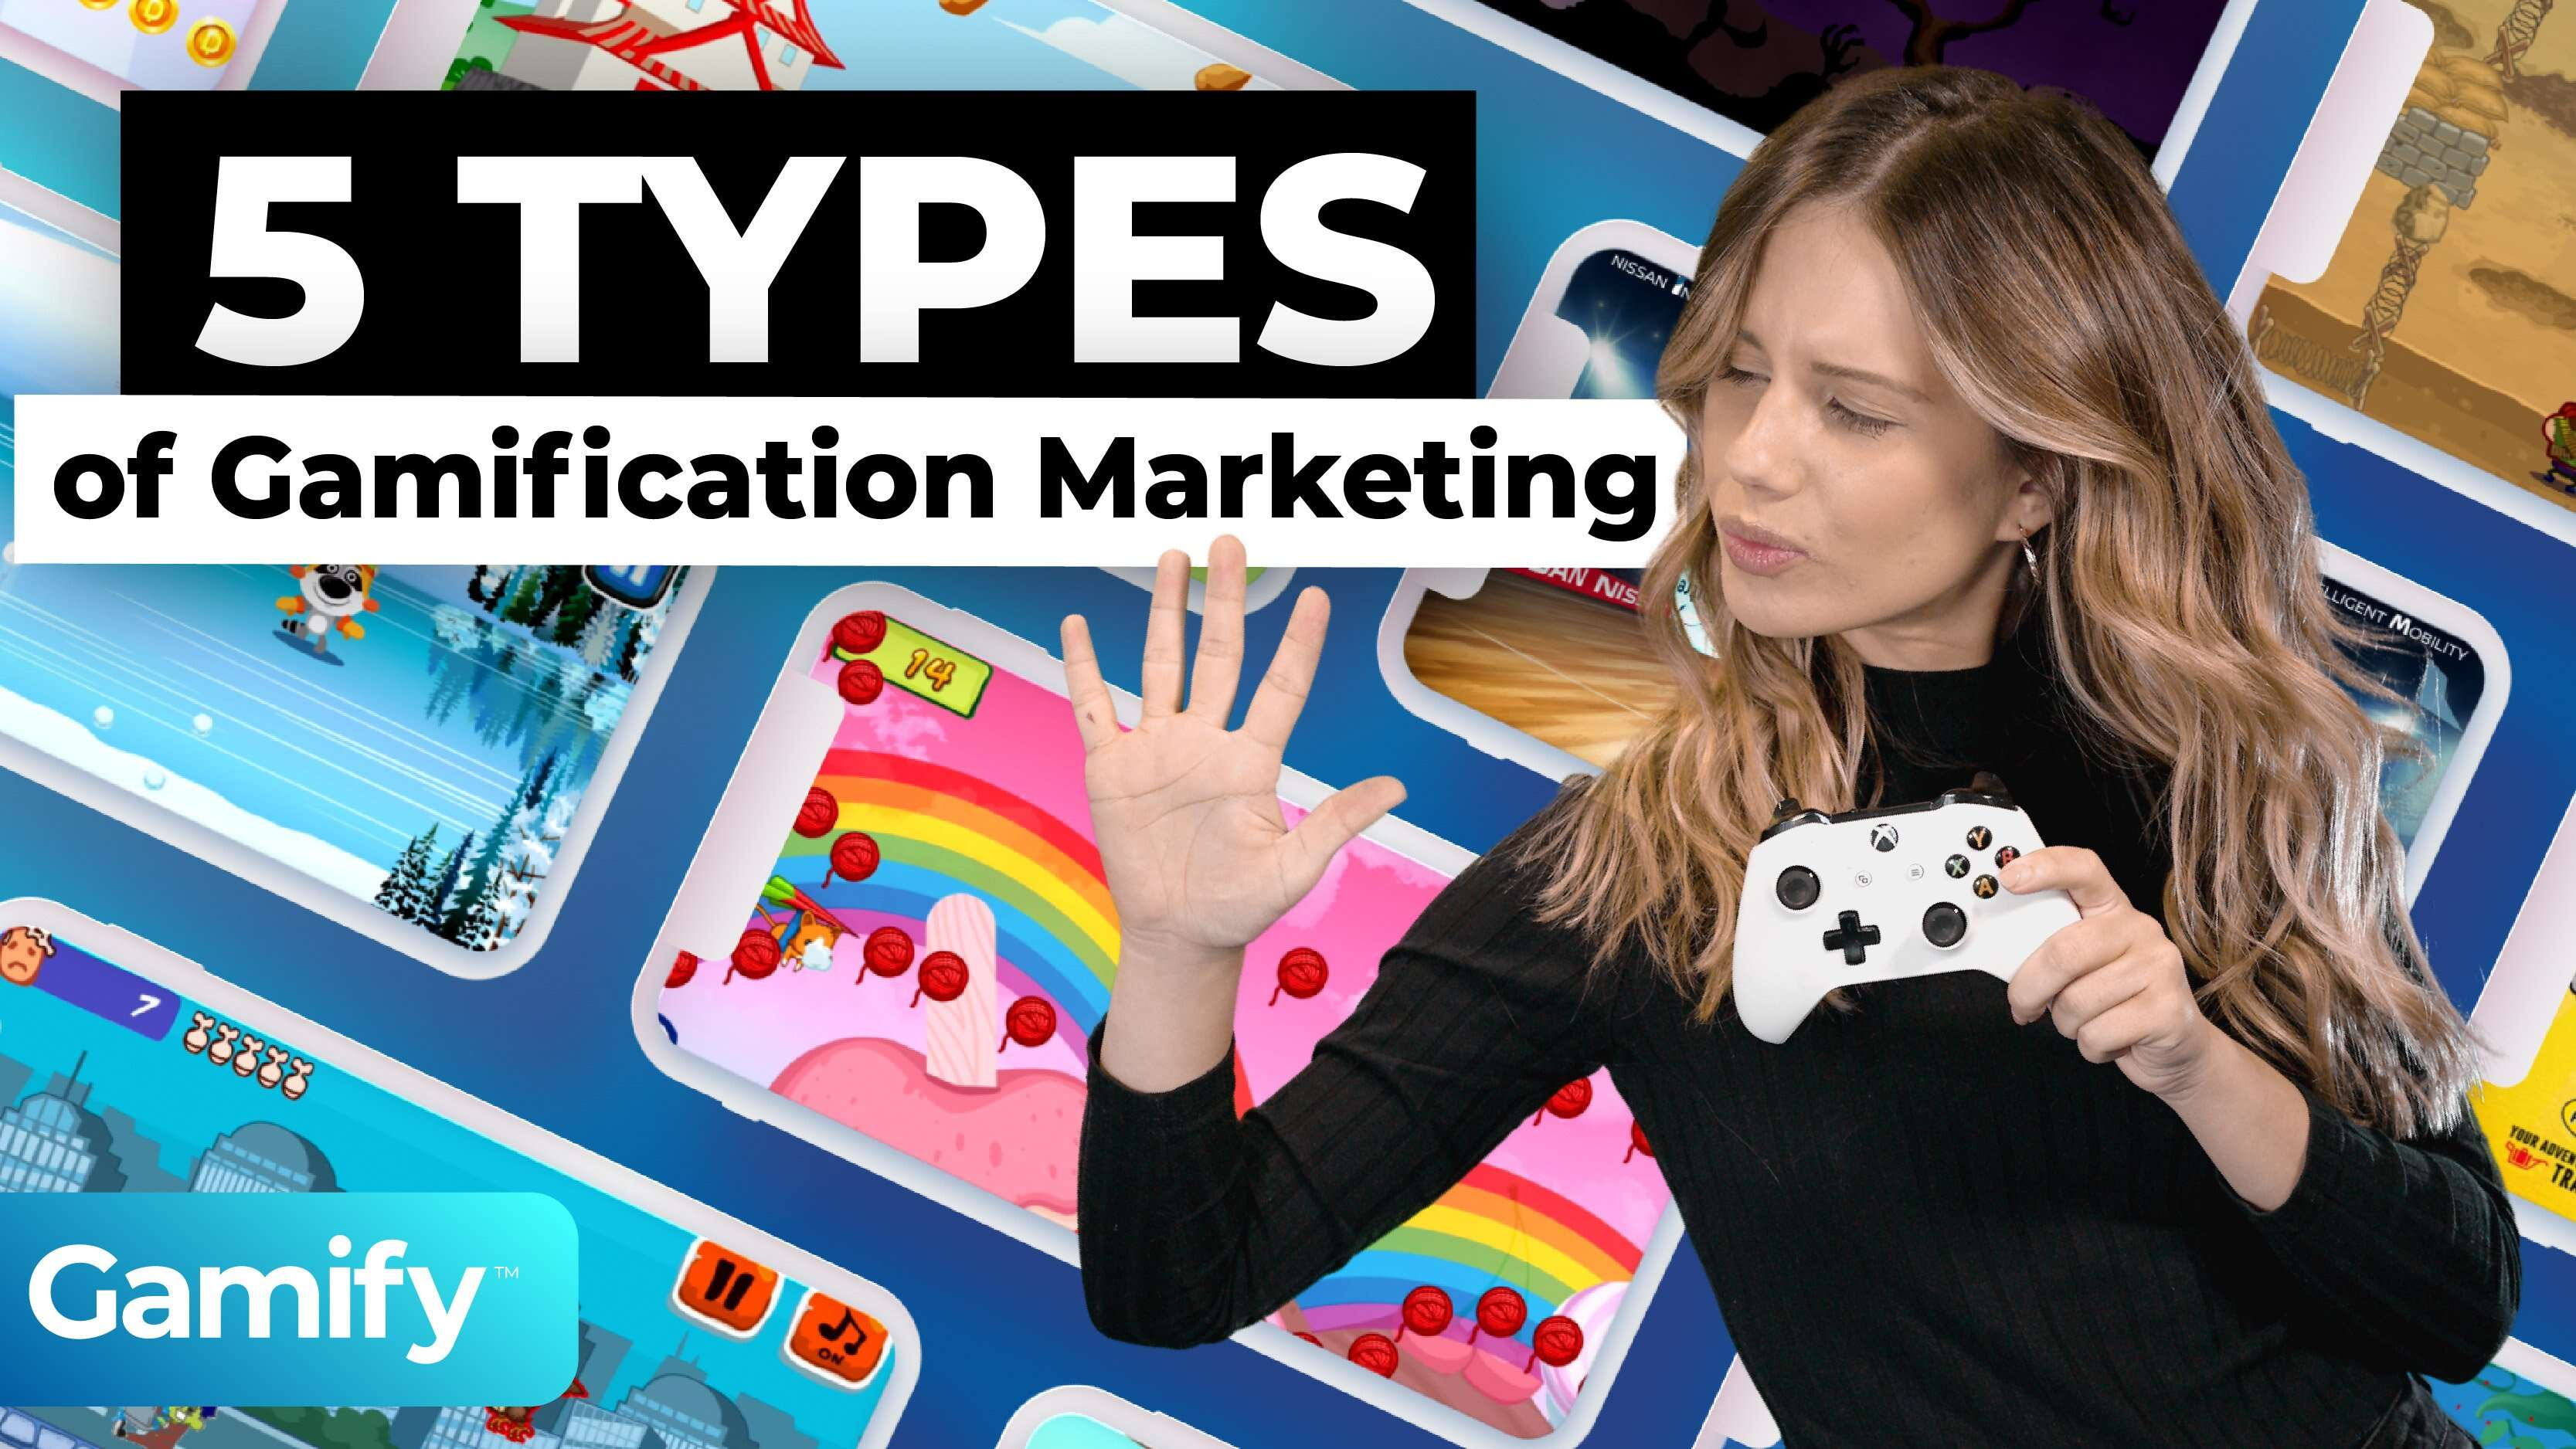 5 types of Gamification Marketing